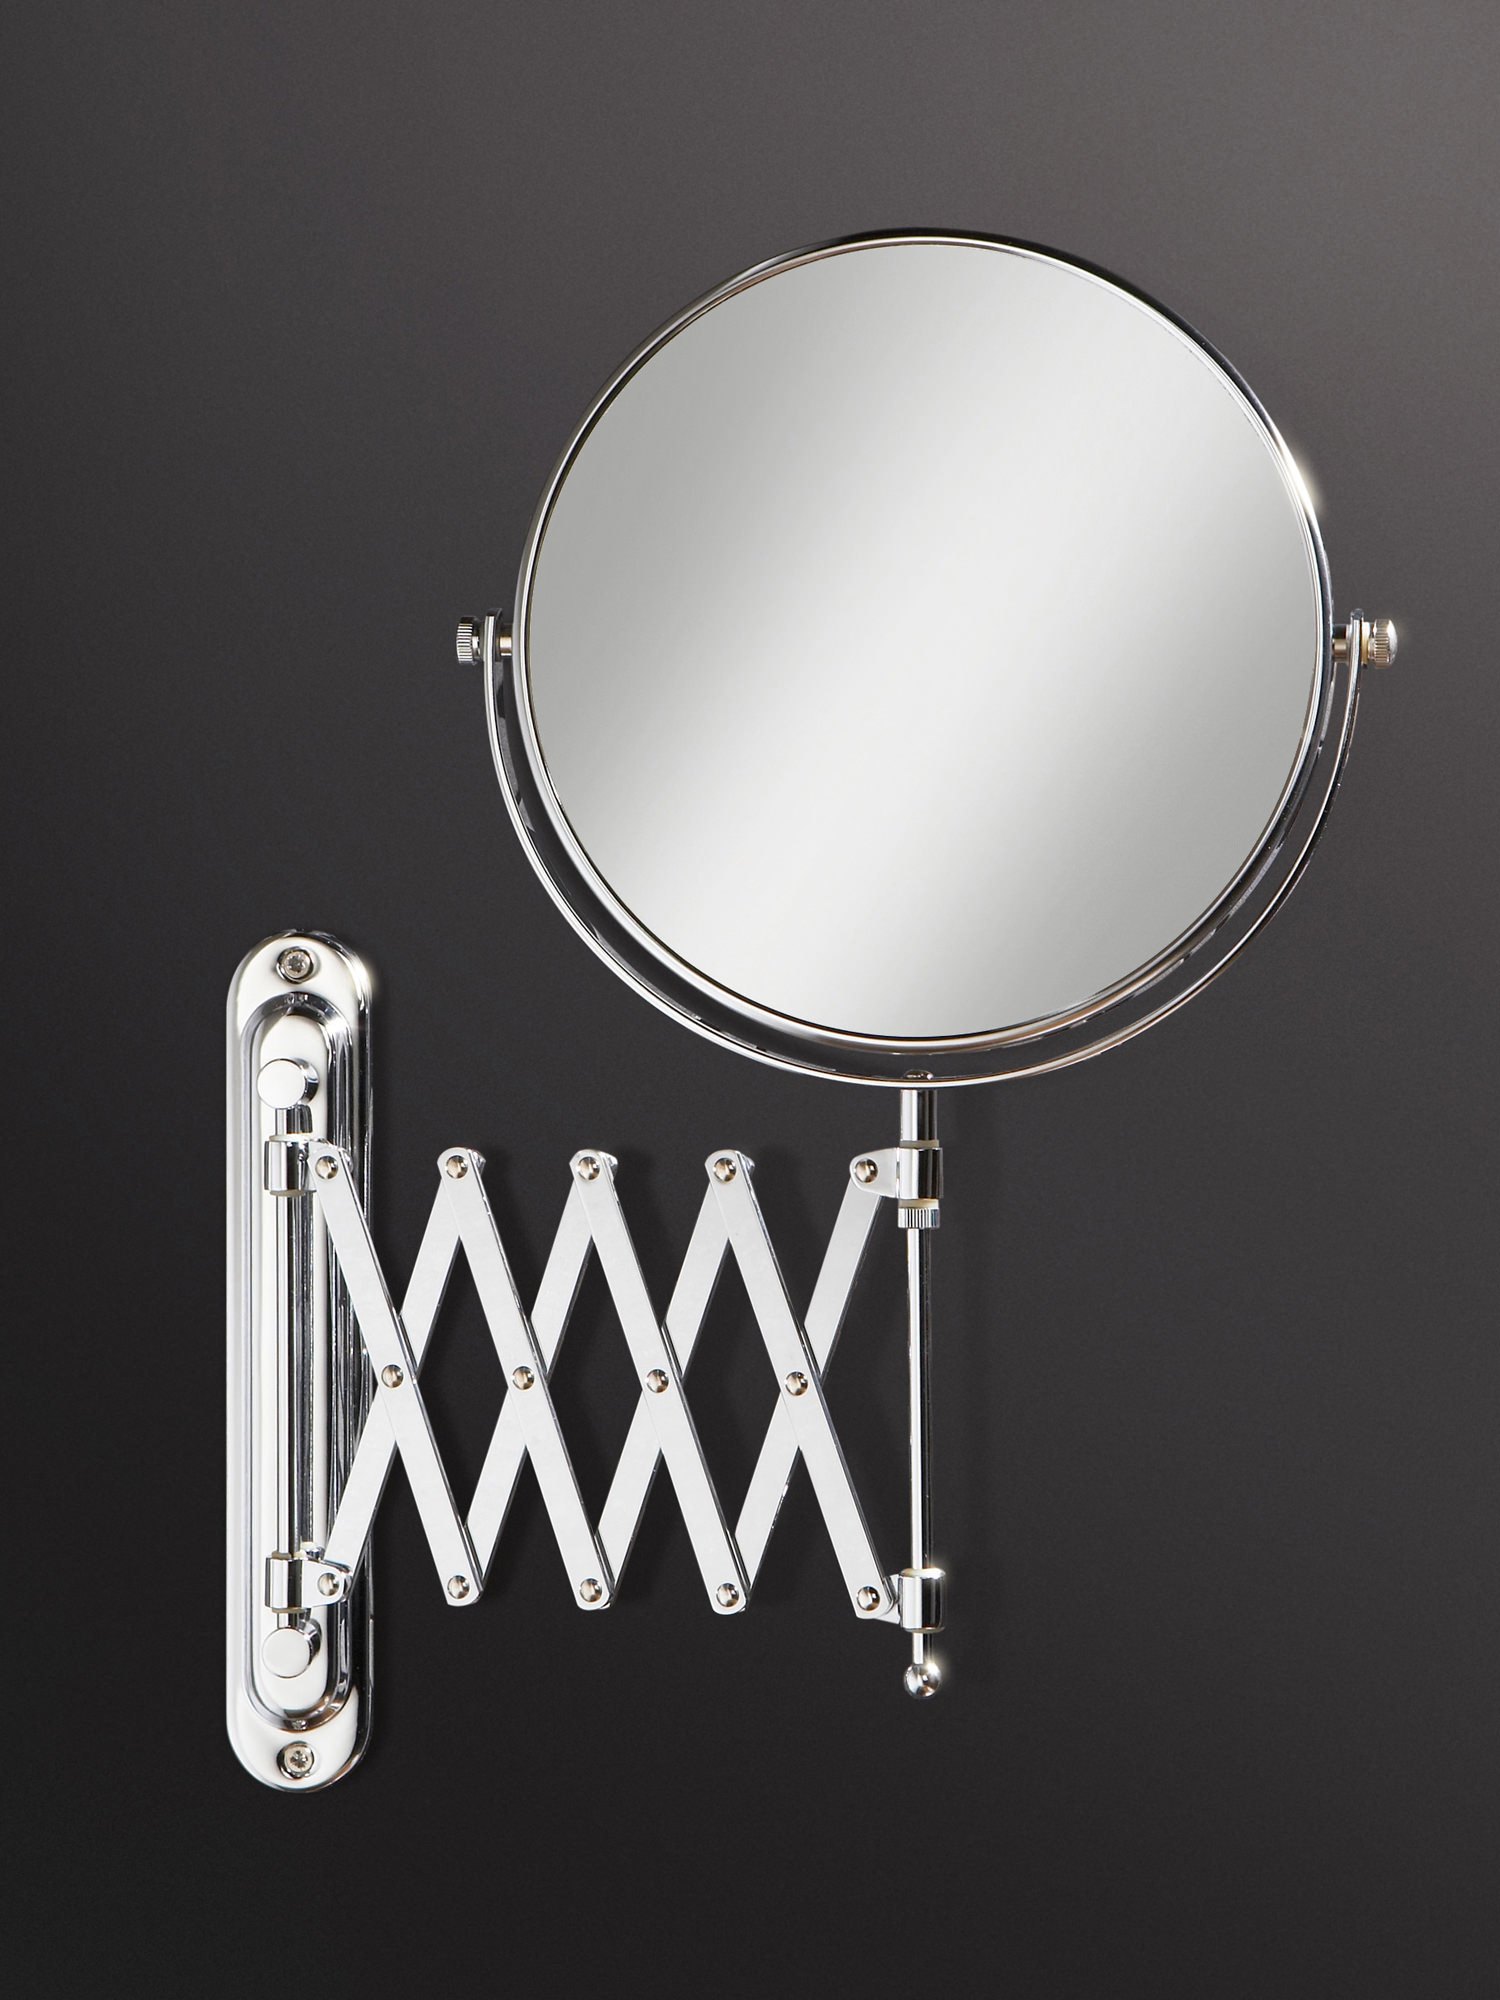 Bathroom Extension Mirrors Hib Rossi Extendable Magnifying Bathroom Mirror 27200